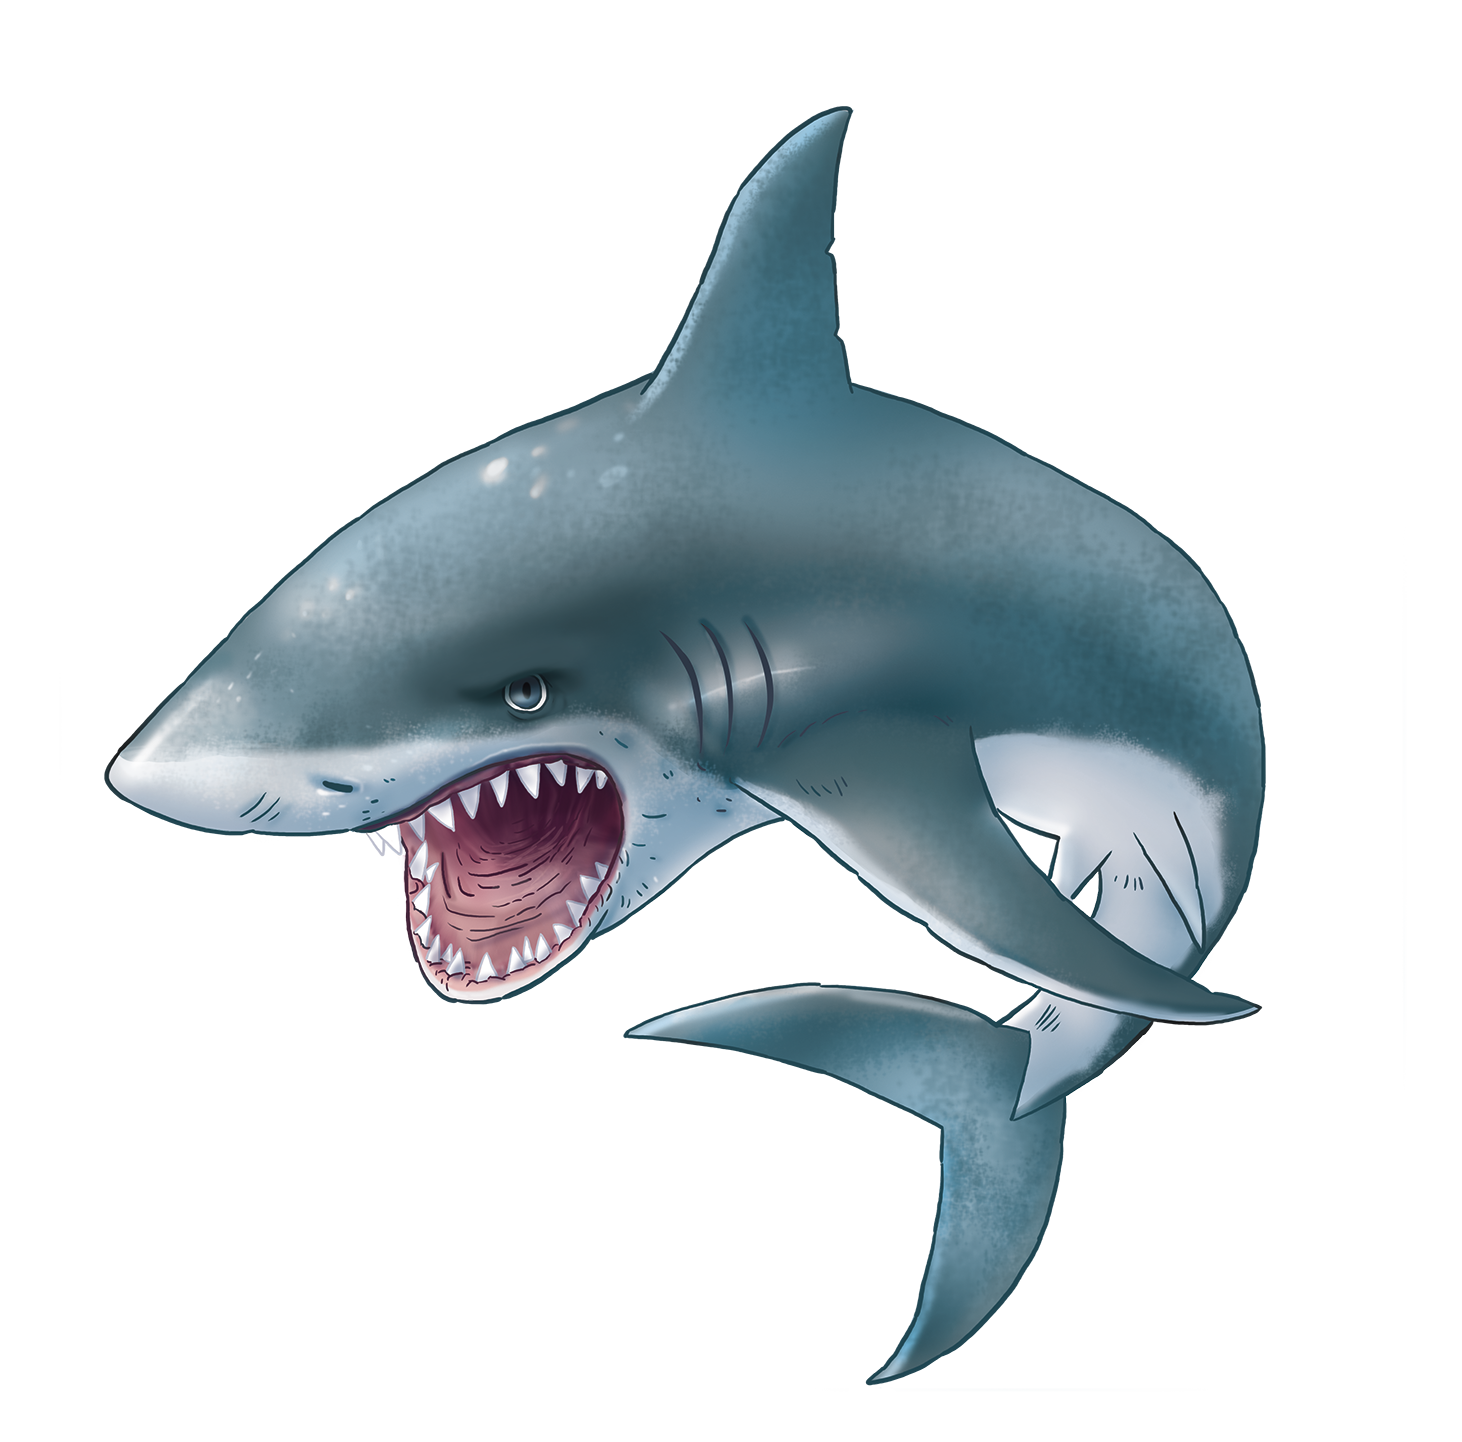 Shark PNG | Shark, Cute shark, Sea animals